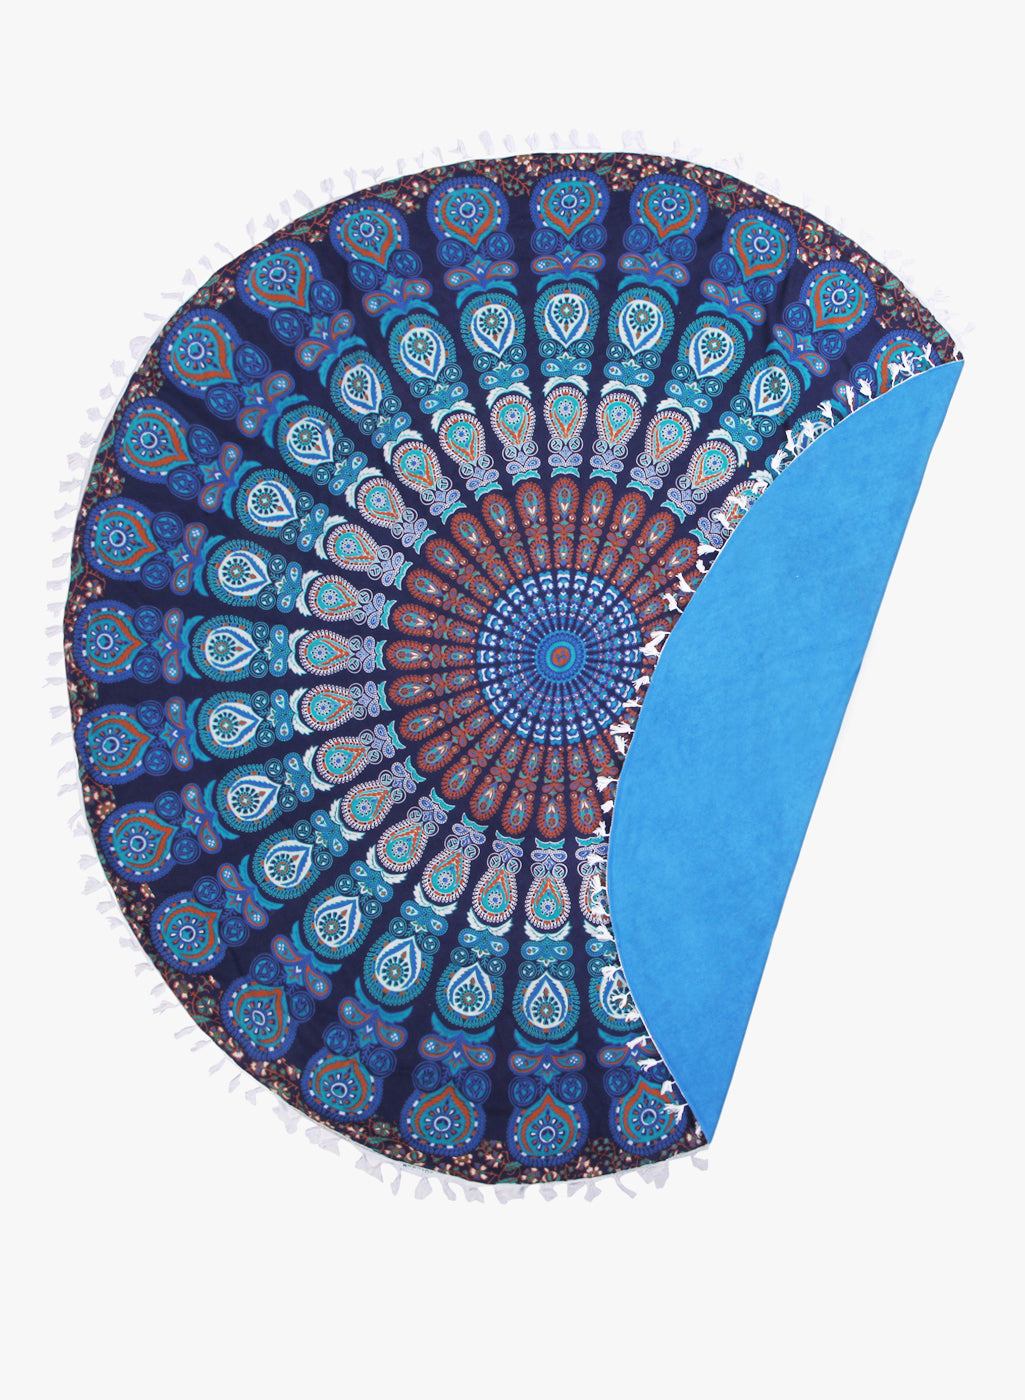 Spiritual Warrior blue round towels are both fun and high quality. These round mandala towels are the best summer accessory for the beach, picnic and as a throw.